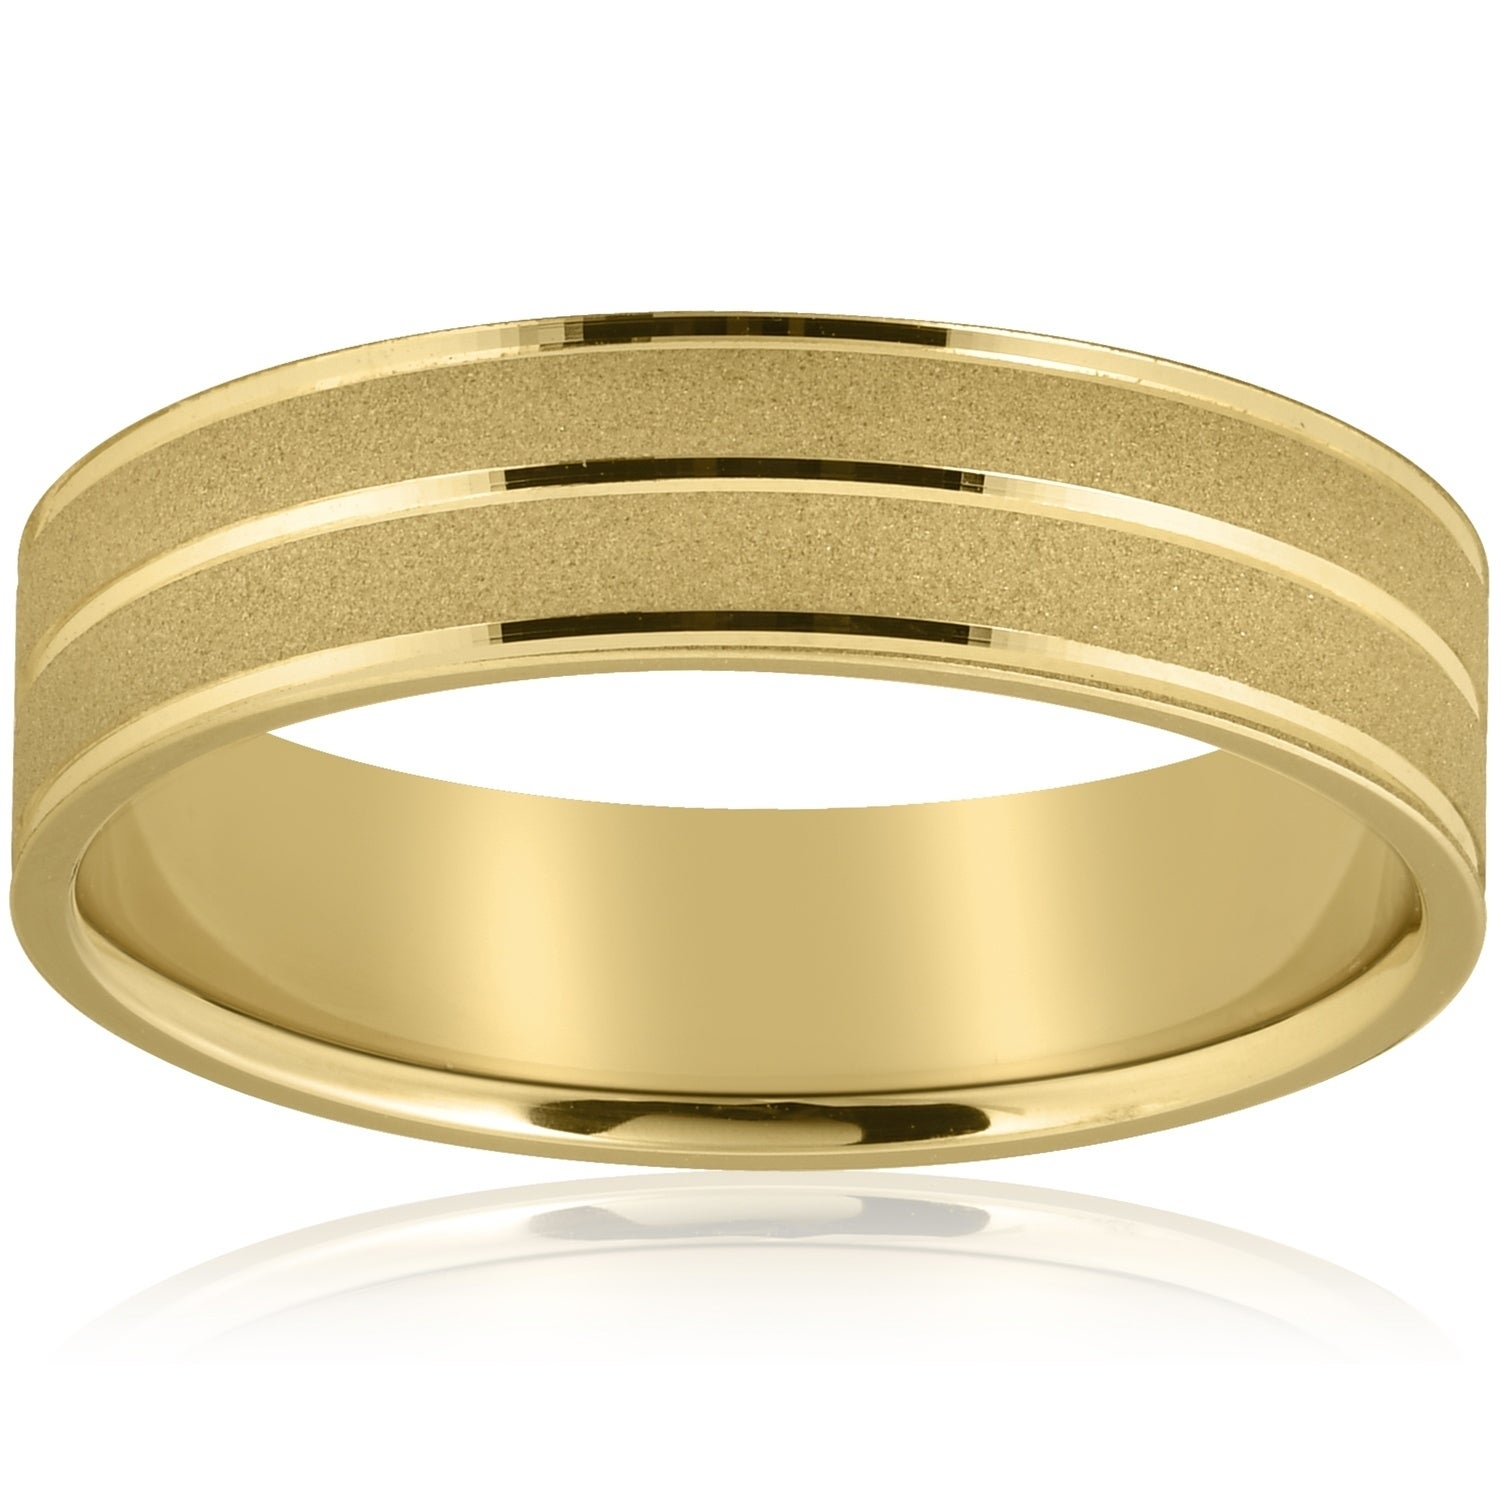 This is a graphic of Pompeii42 42k Yellow Gold Mens Wedding Ring 42mm Wide Flat Band